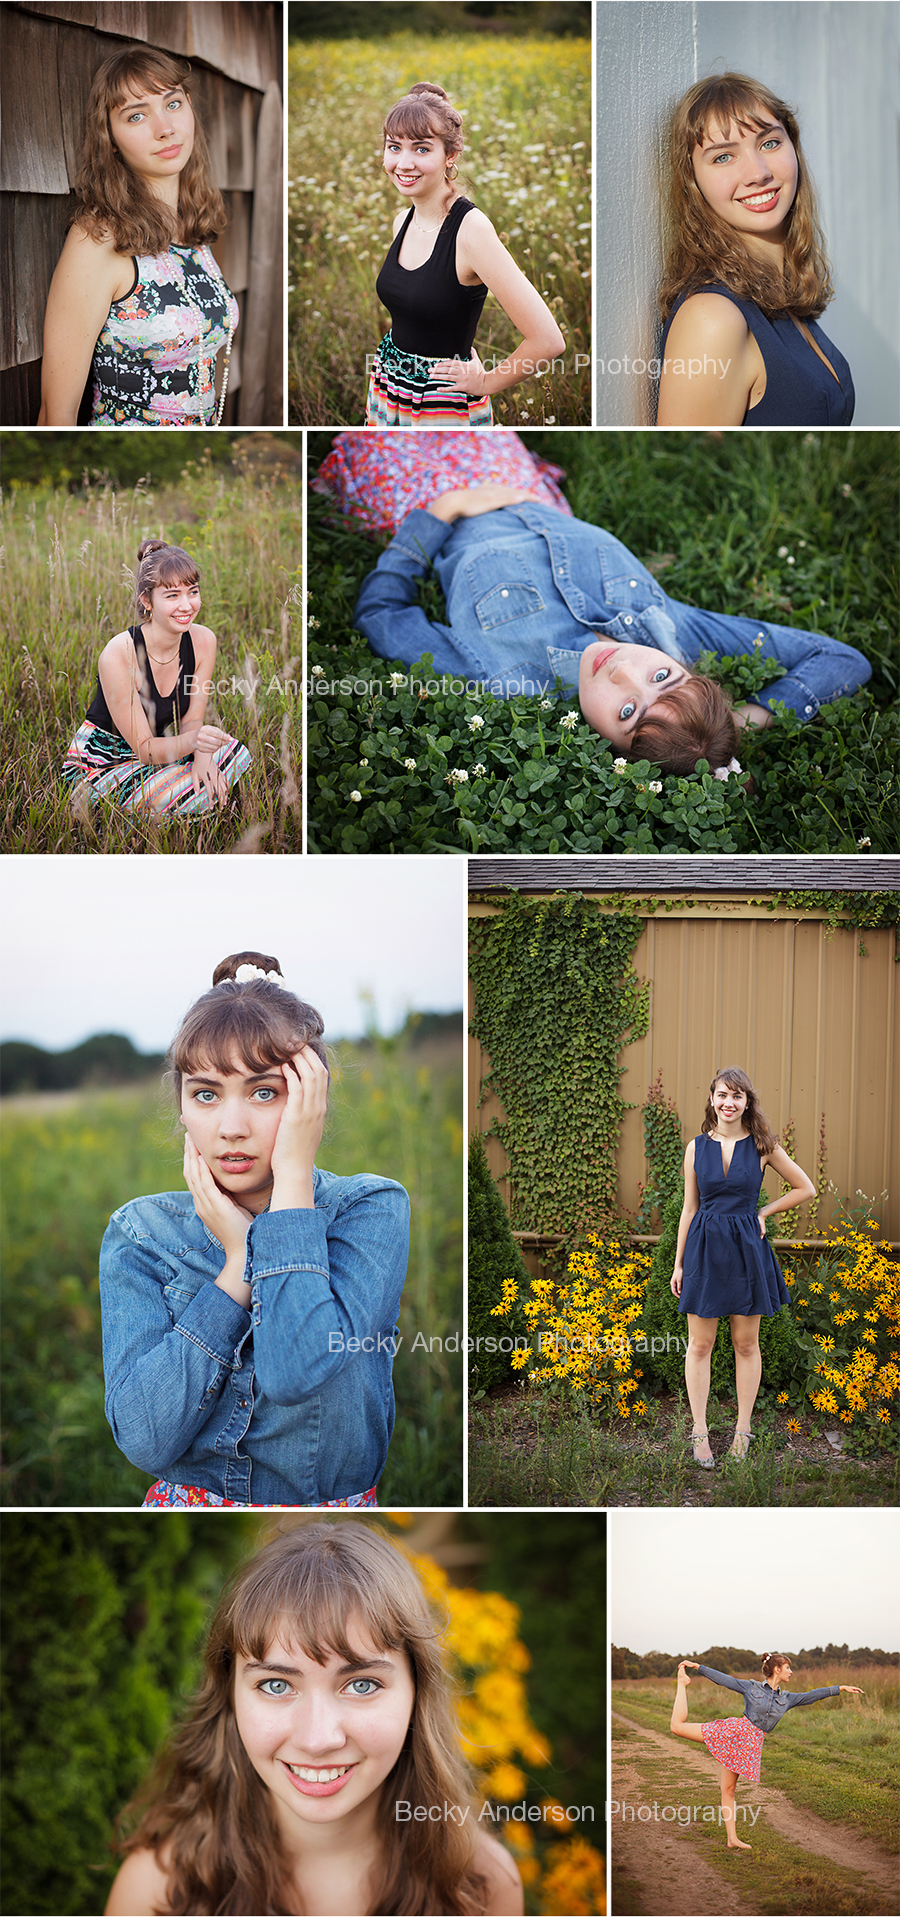 Beautiful Hannah's senior portraits by Becky Anderson Photography  in downtown Kalamazoo and a beautiful field setting.